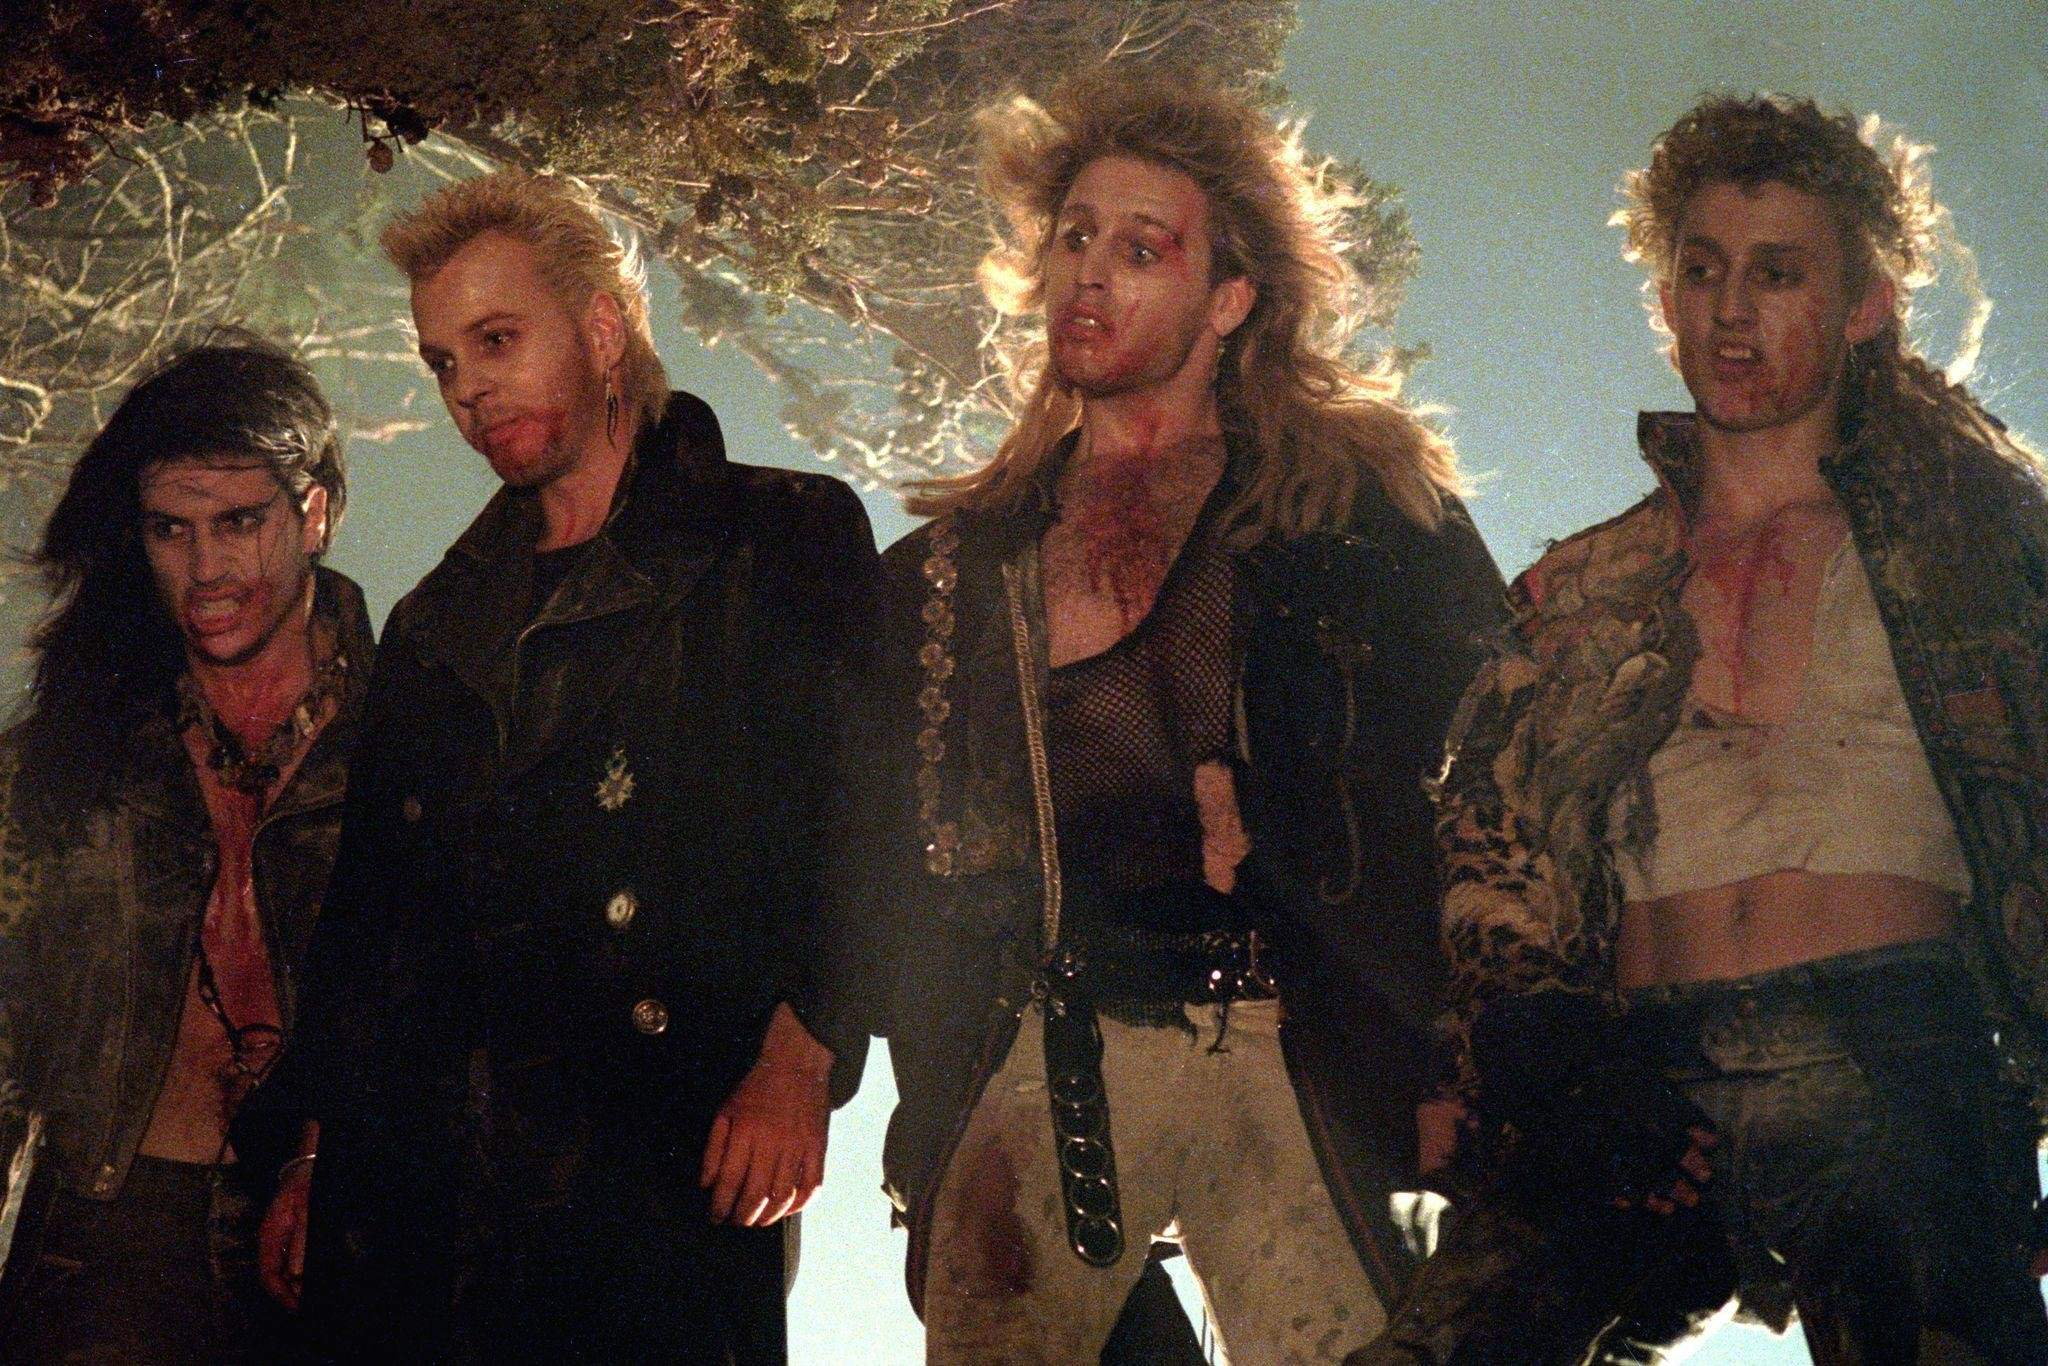 The lost boys: a vampire roller coaster! (English)